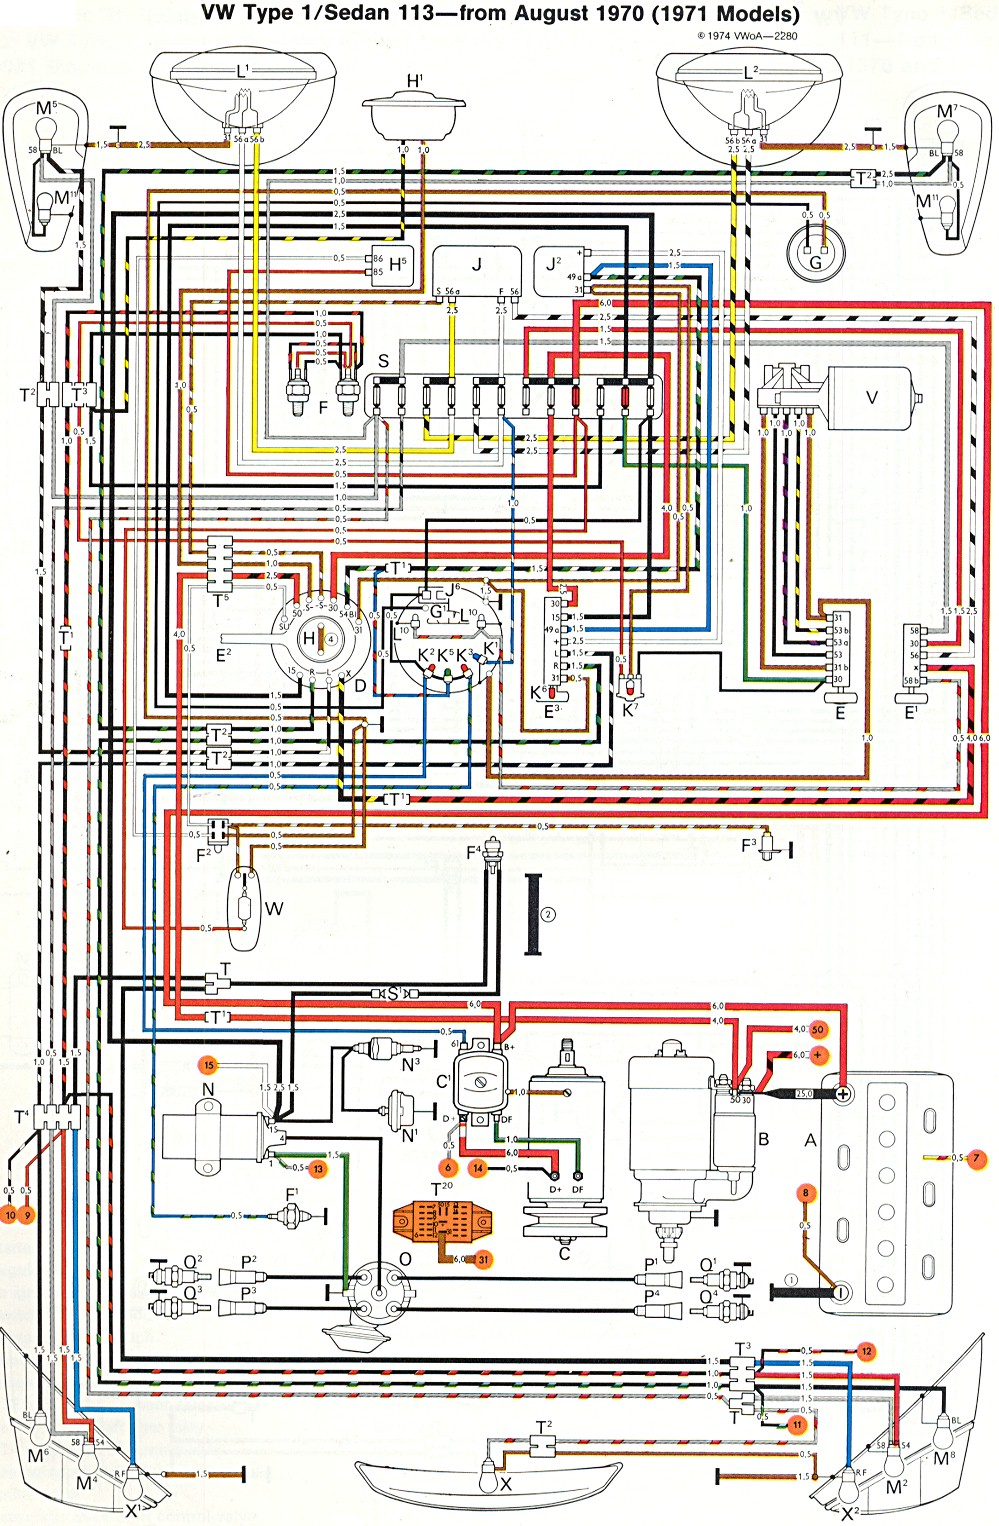 Volkswagen Fuse Box Diagram Starting Know About Wiring Lefty Strat 1971 Super Beetle Thegoldenbug Com Jetta 2011